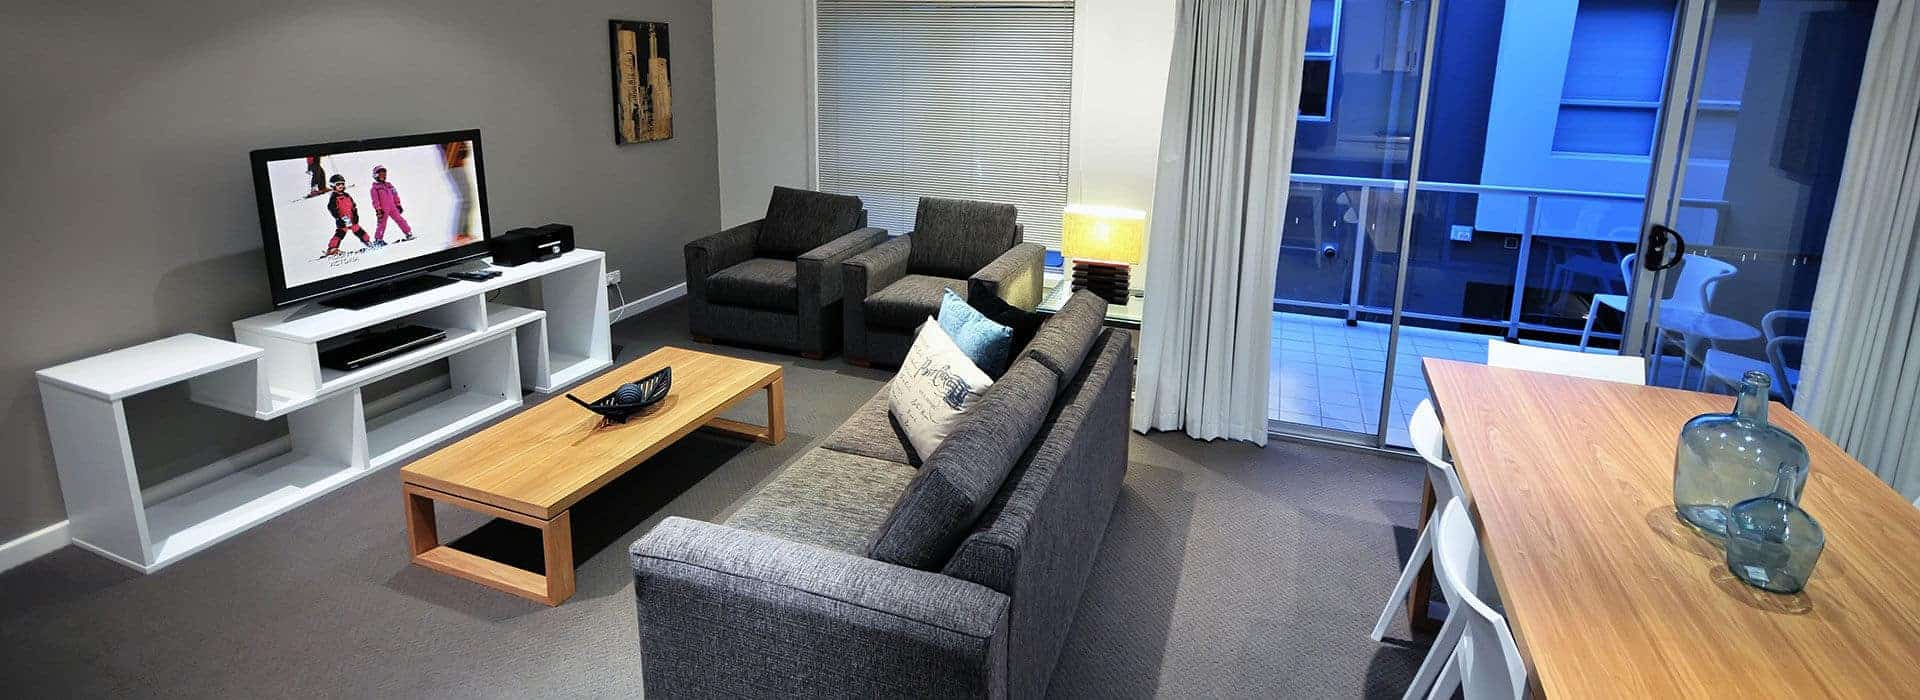 Hotel serviced apartments Adelaide